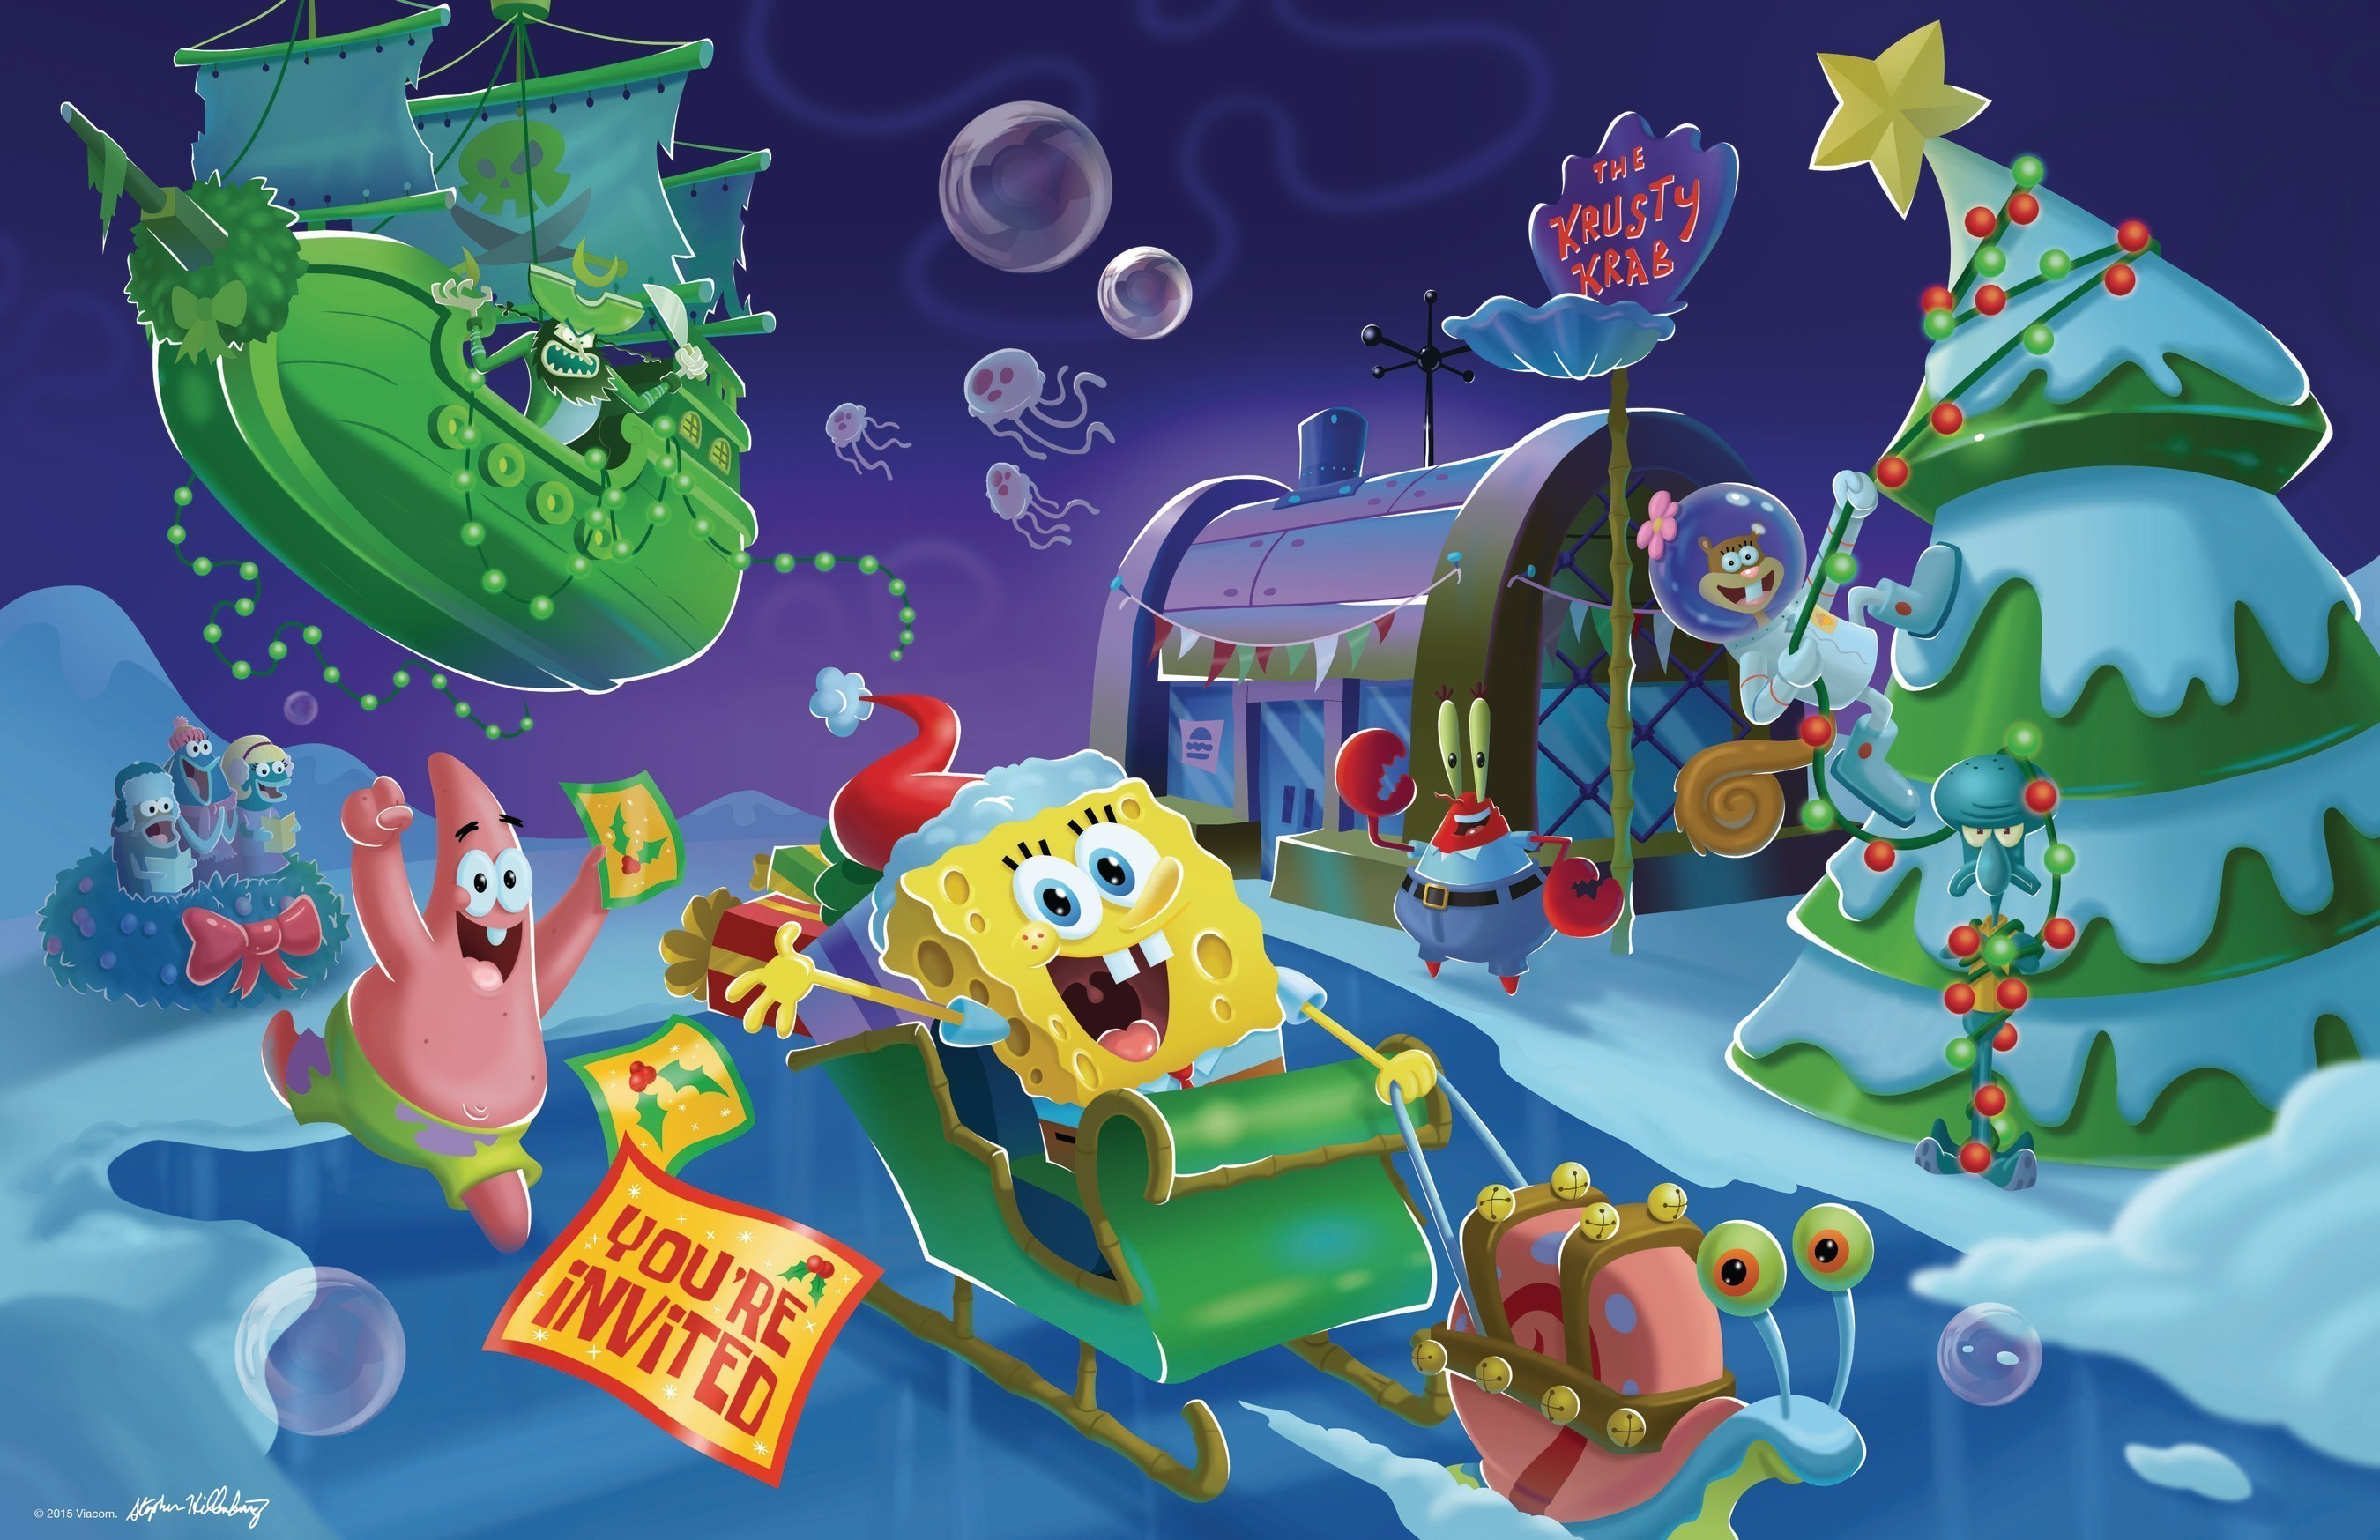 A SpongeBob Christmas Party is the brand new theme revealed for the 2015 ICE LAND: